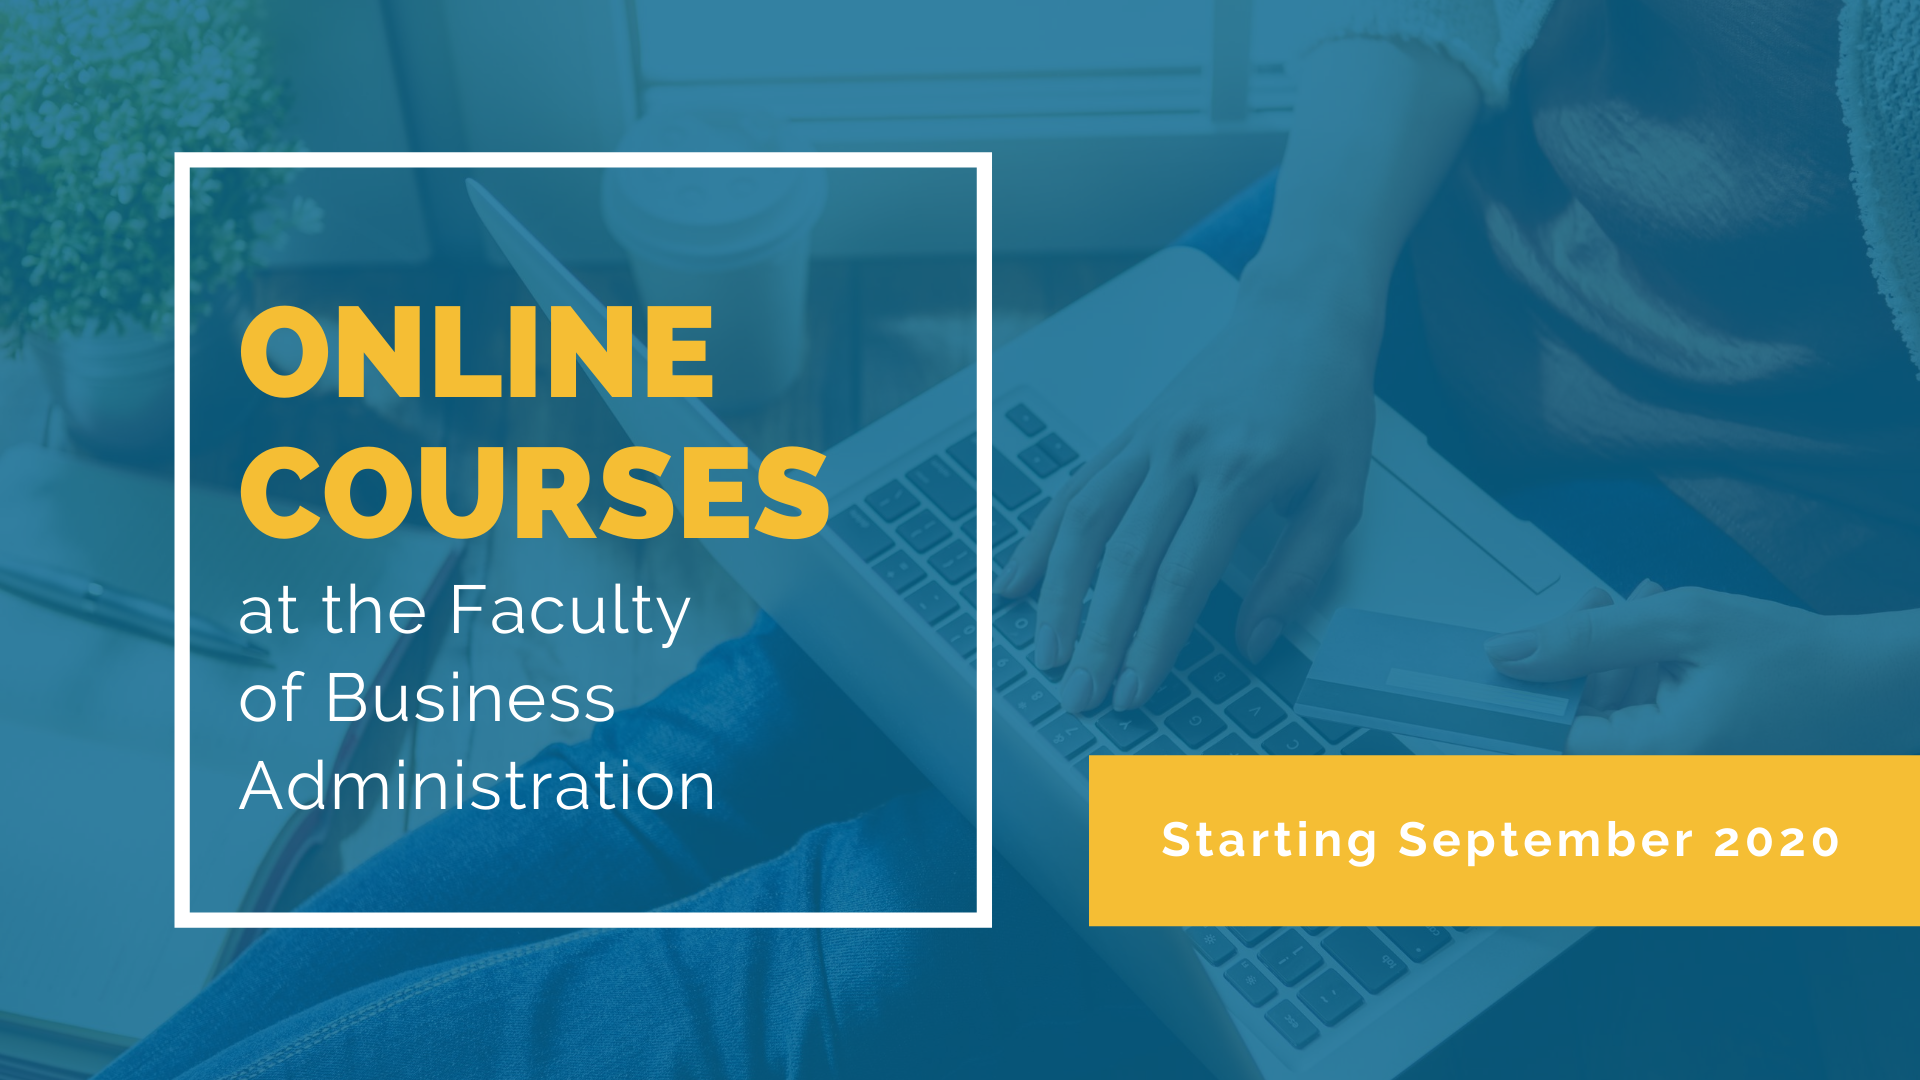 Open online courses at the Faculty of Business Administration